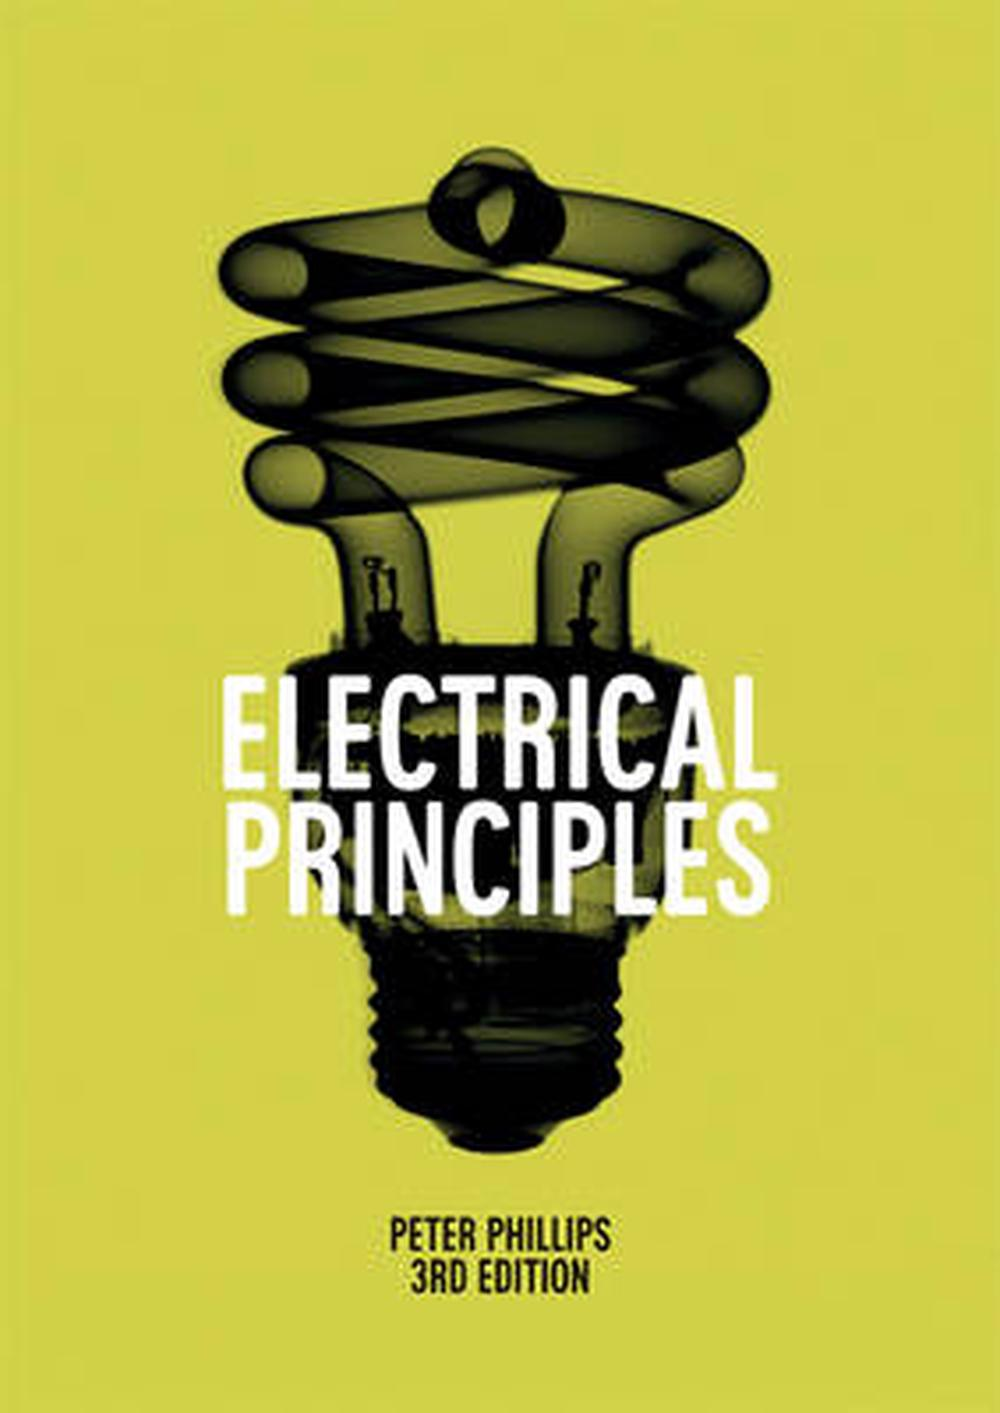 Electrical Principles, 3rd Edition